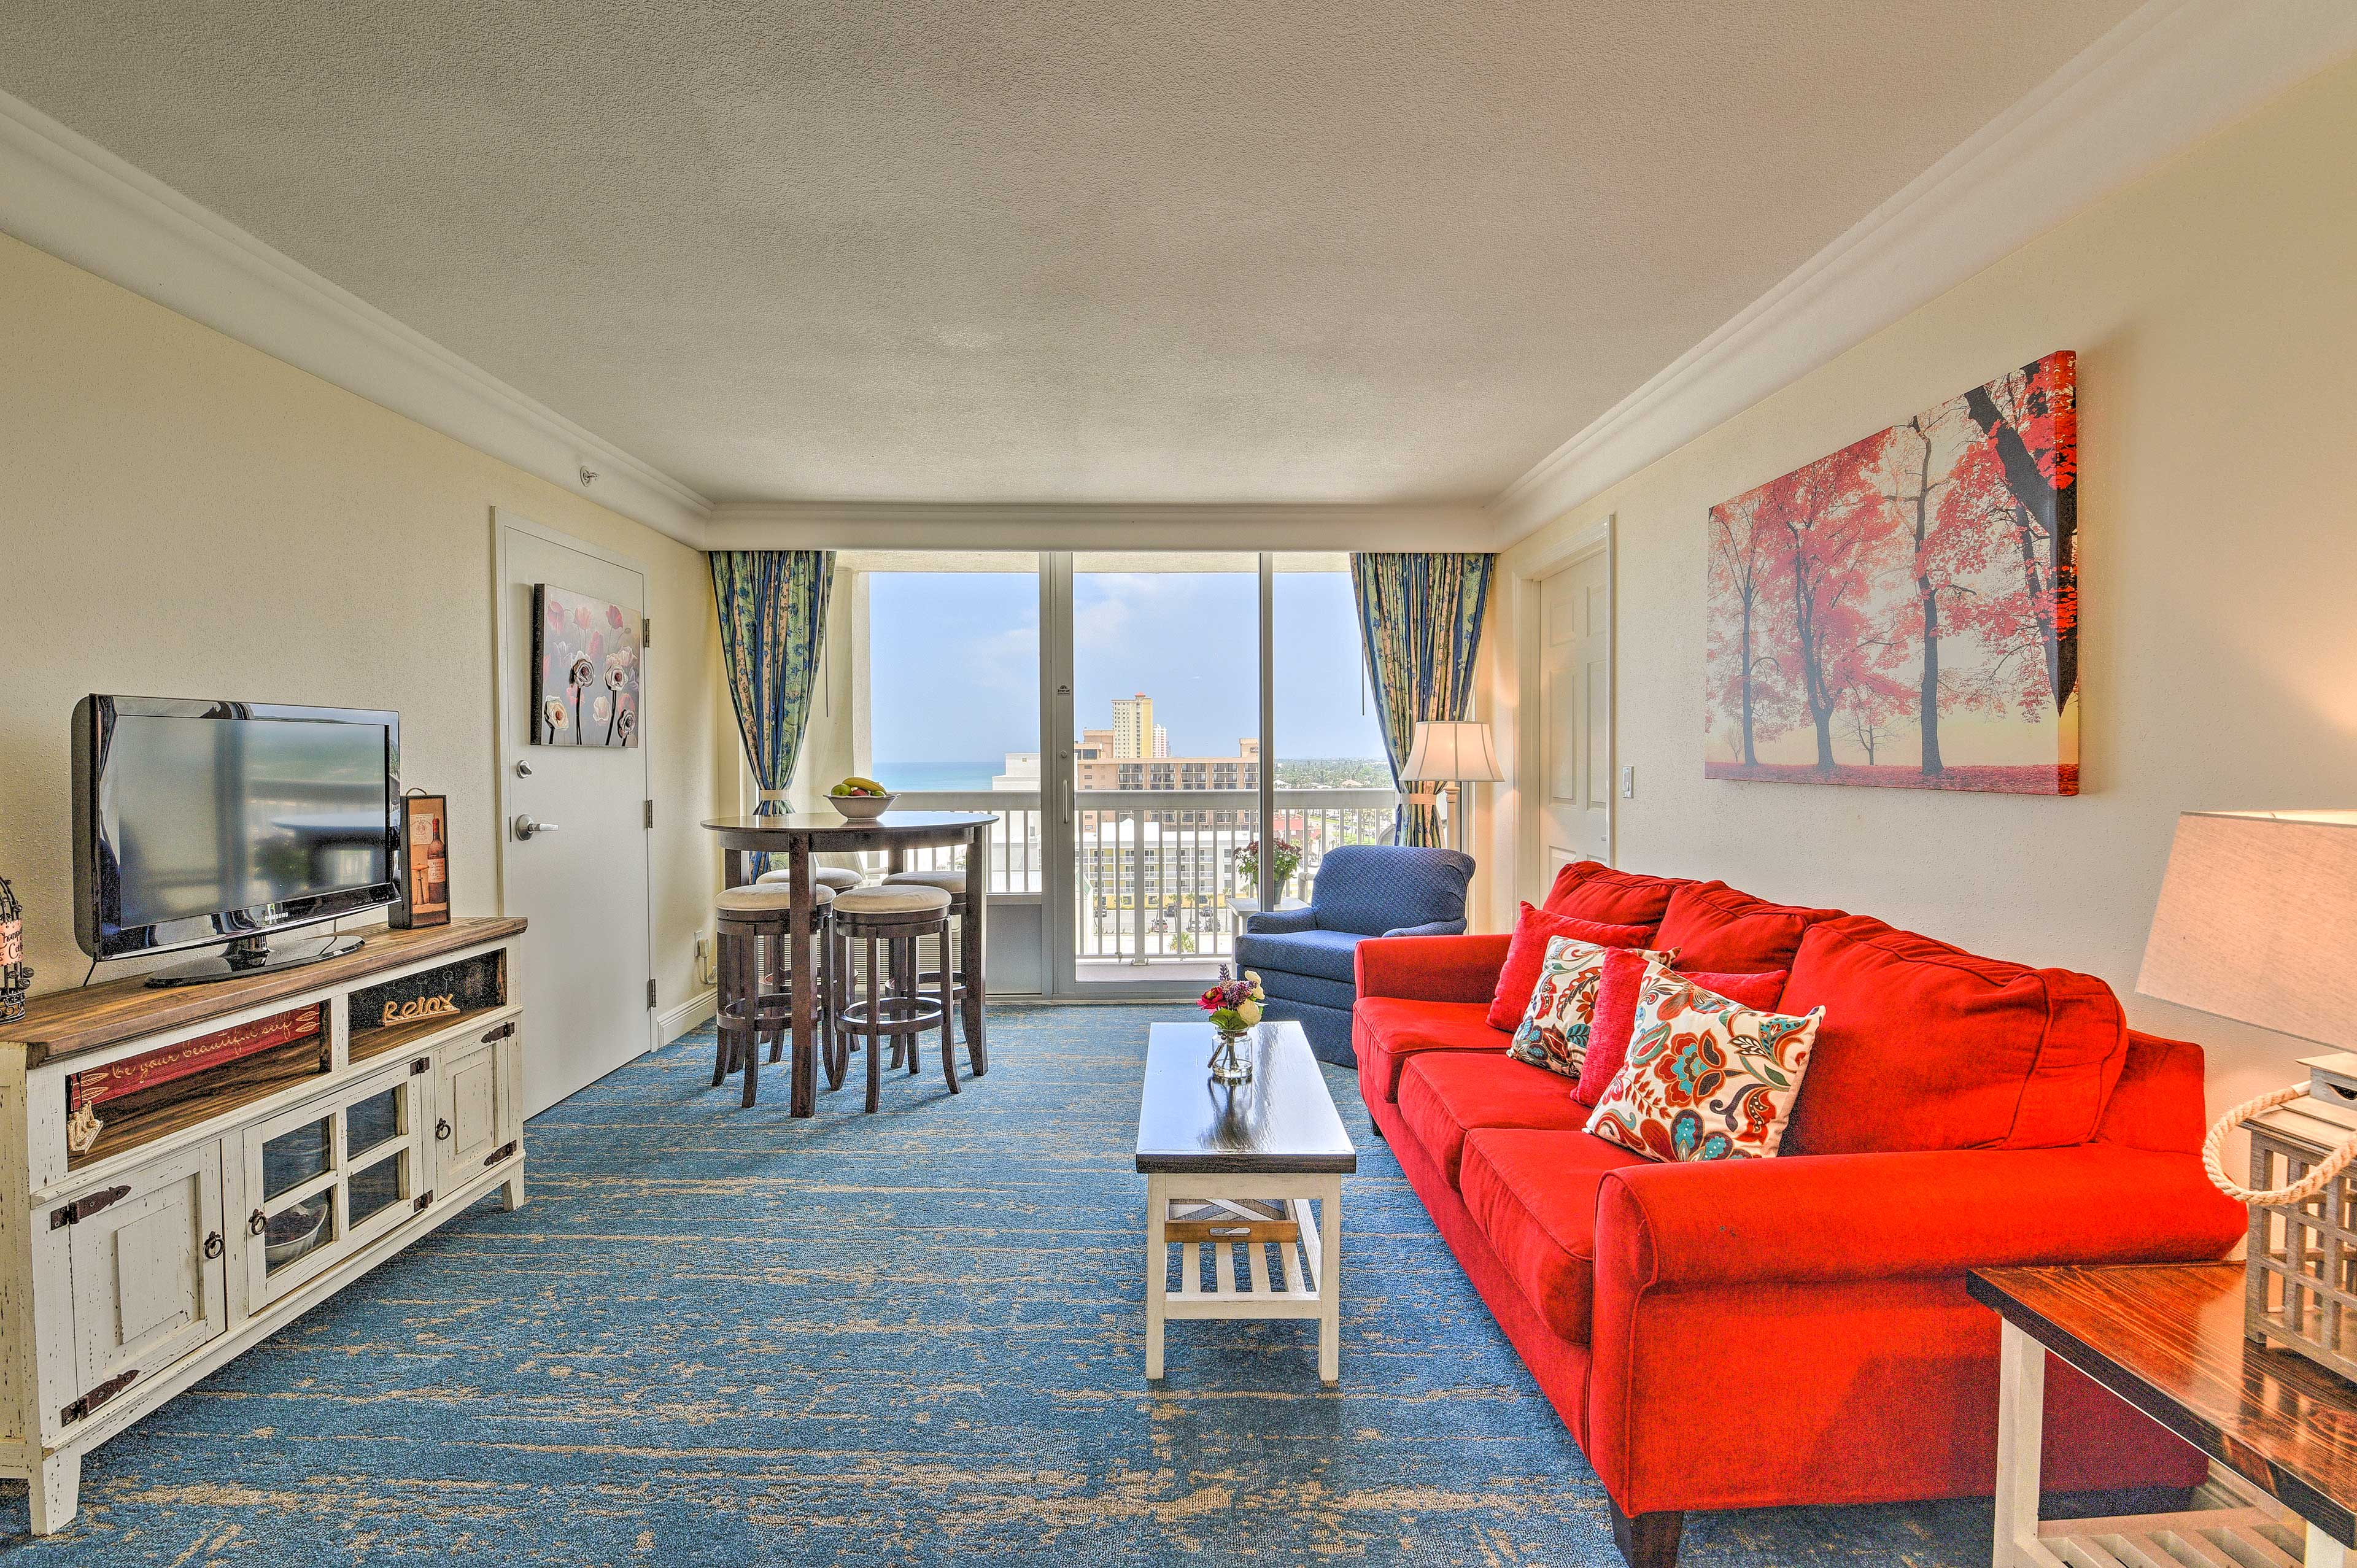 Make yourselves at home in this 1-bedroom, 1-bath condo!